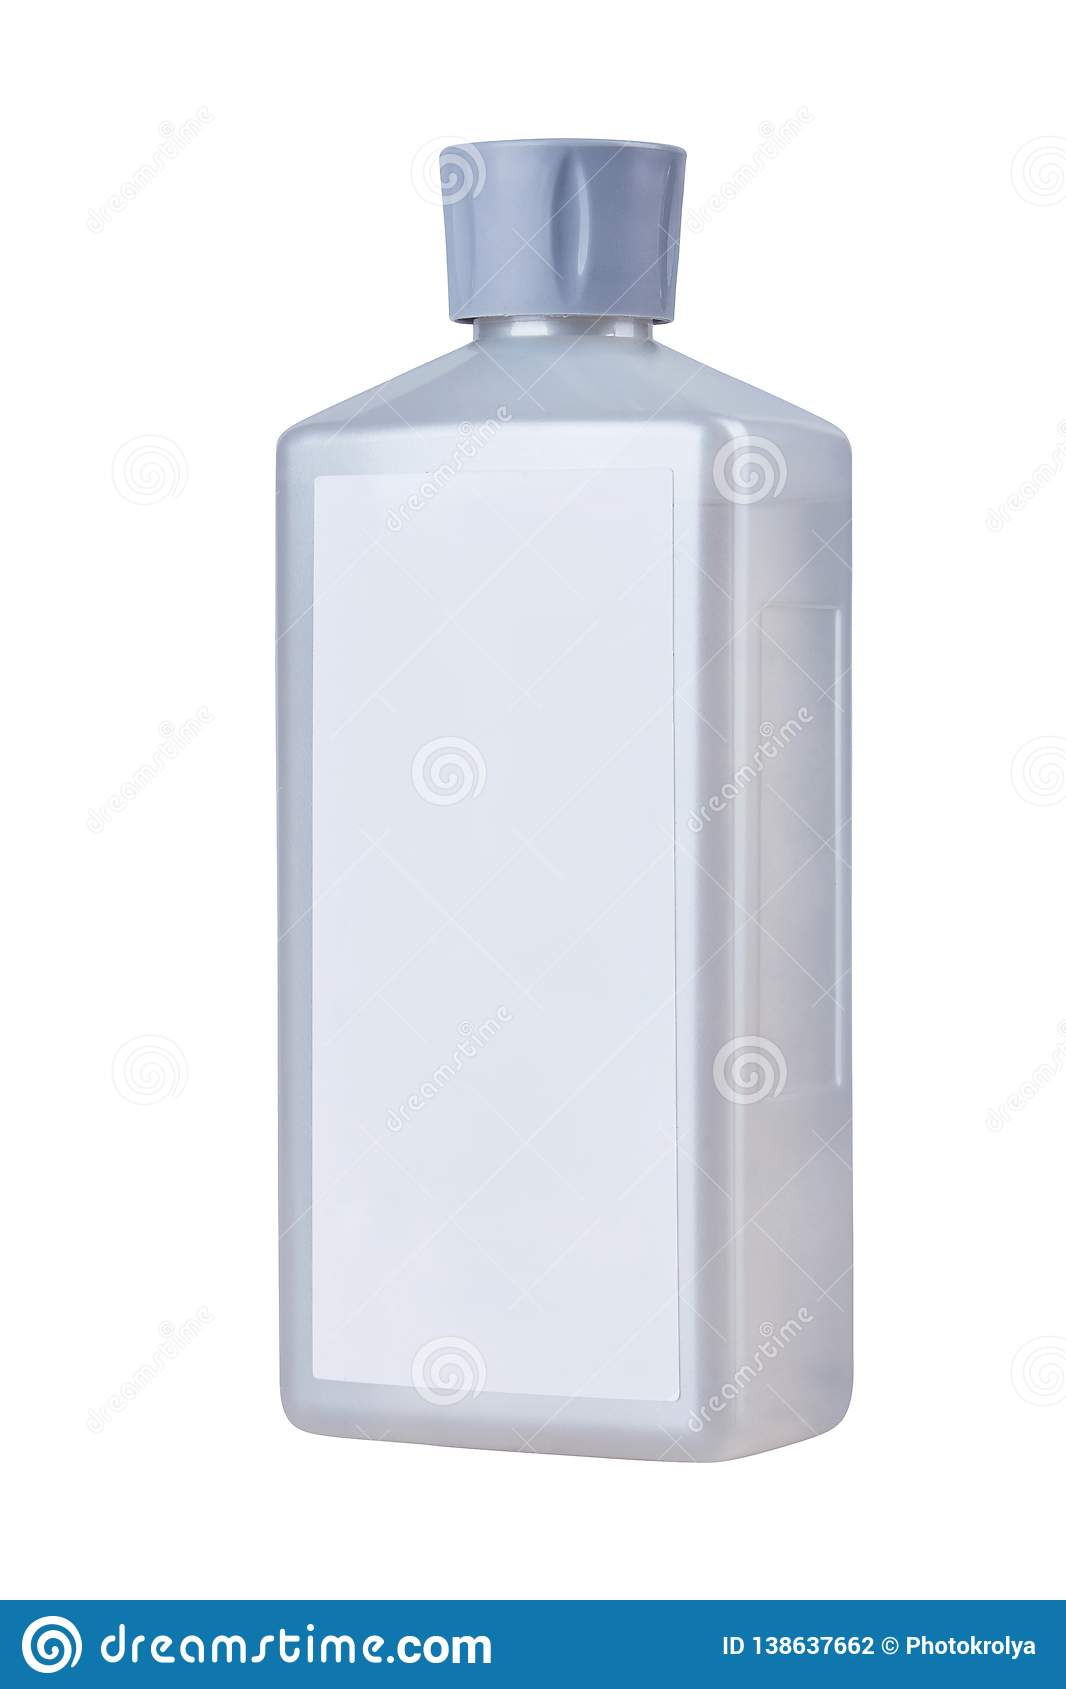 Blank plastic bottle with essential oils for aroma therapy lamp isolated